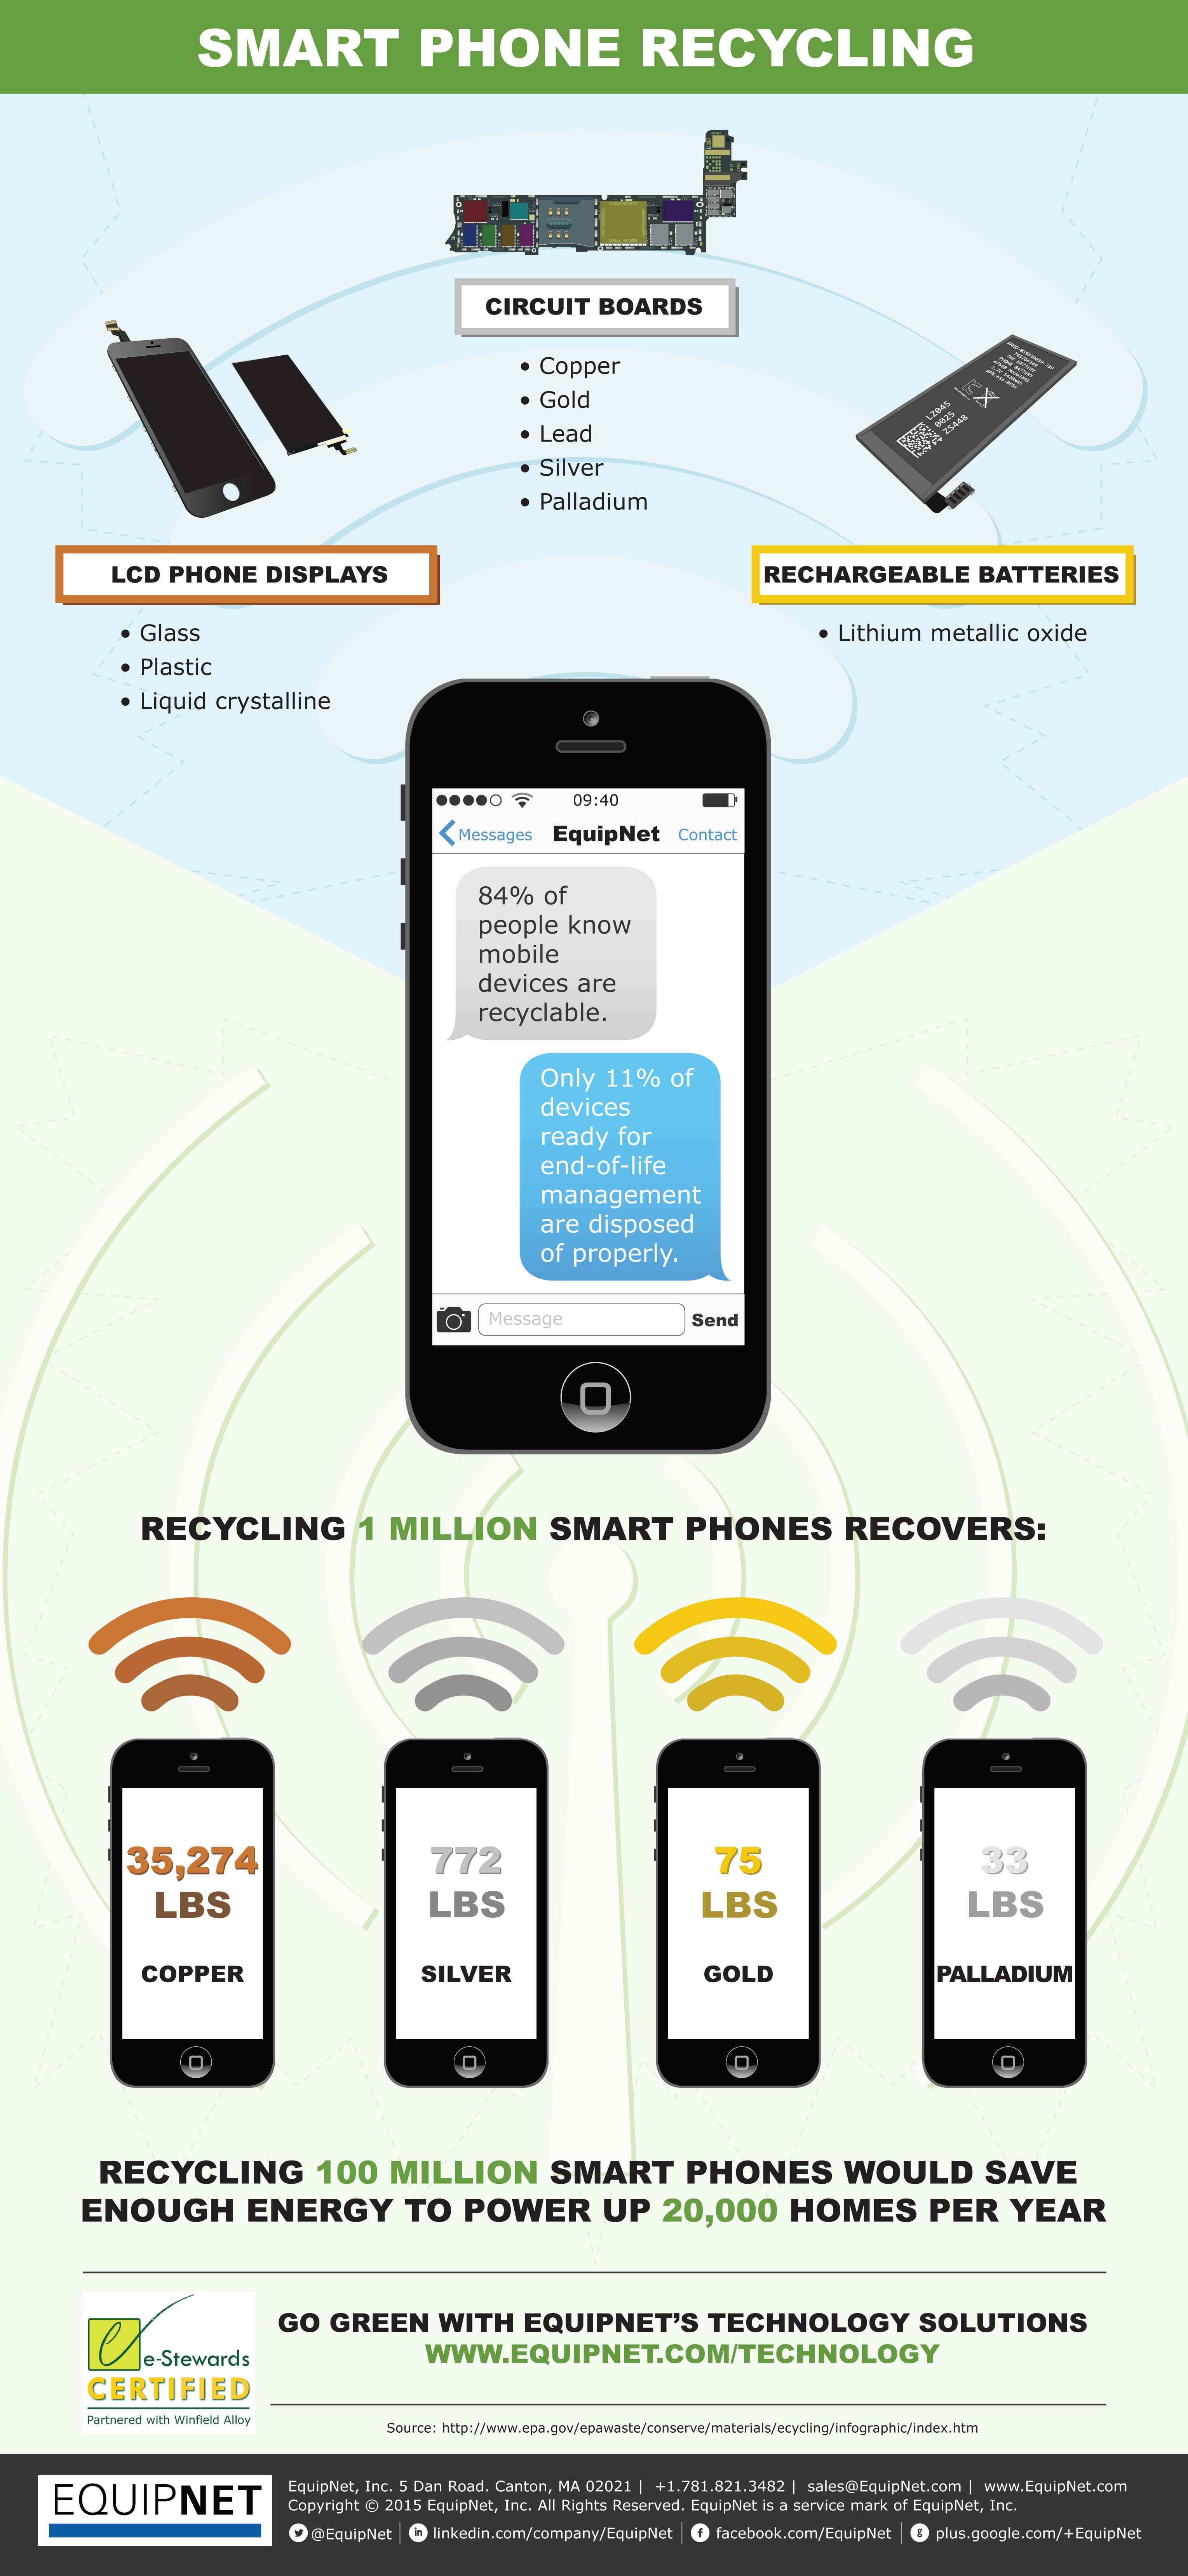 TechSolutions_SmartPhoneRecycling_R2